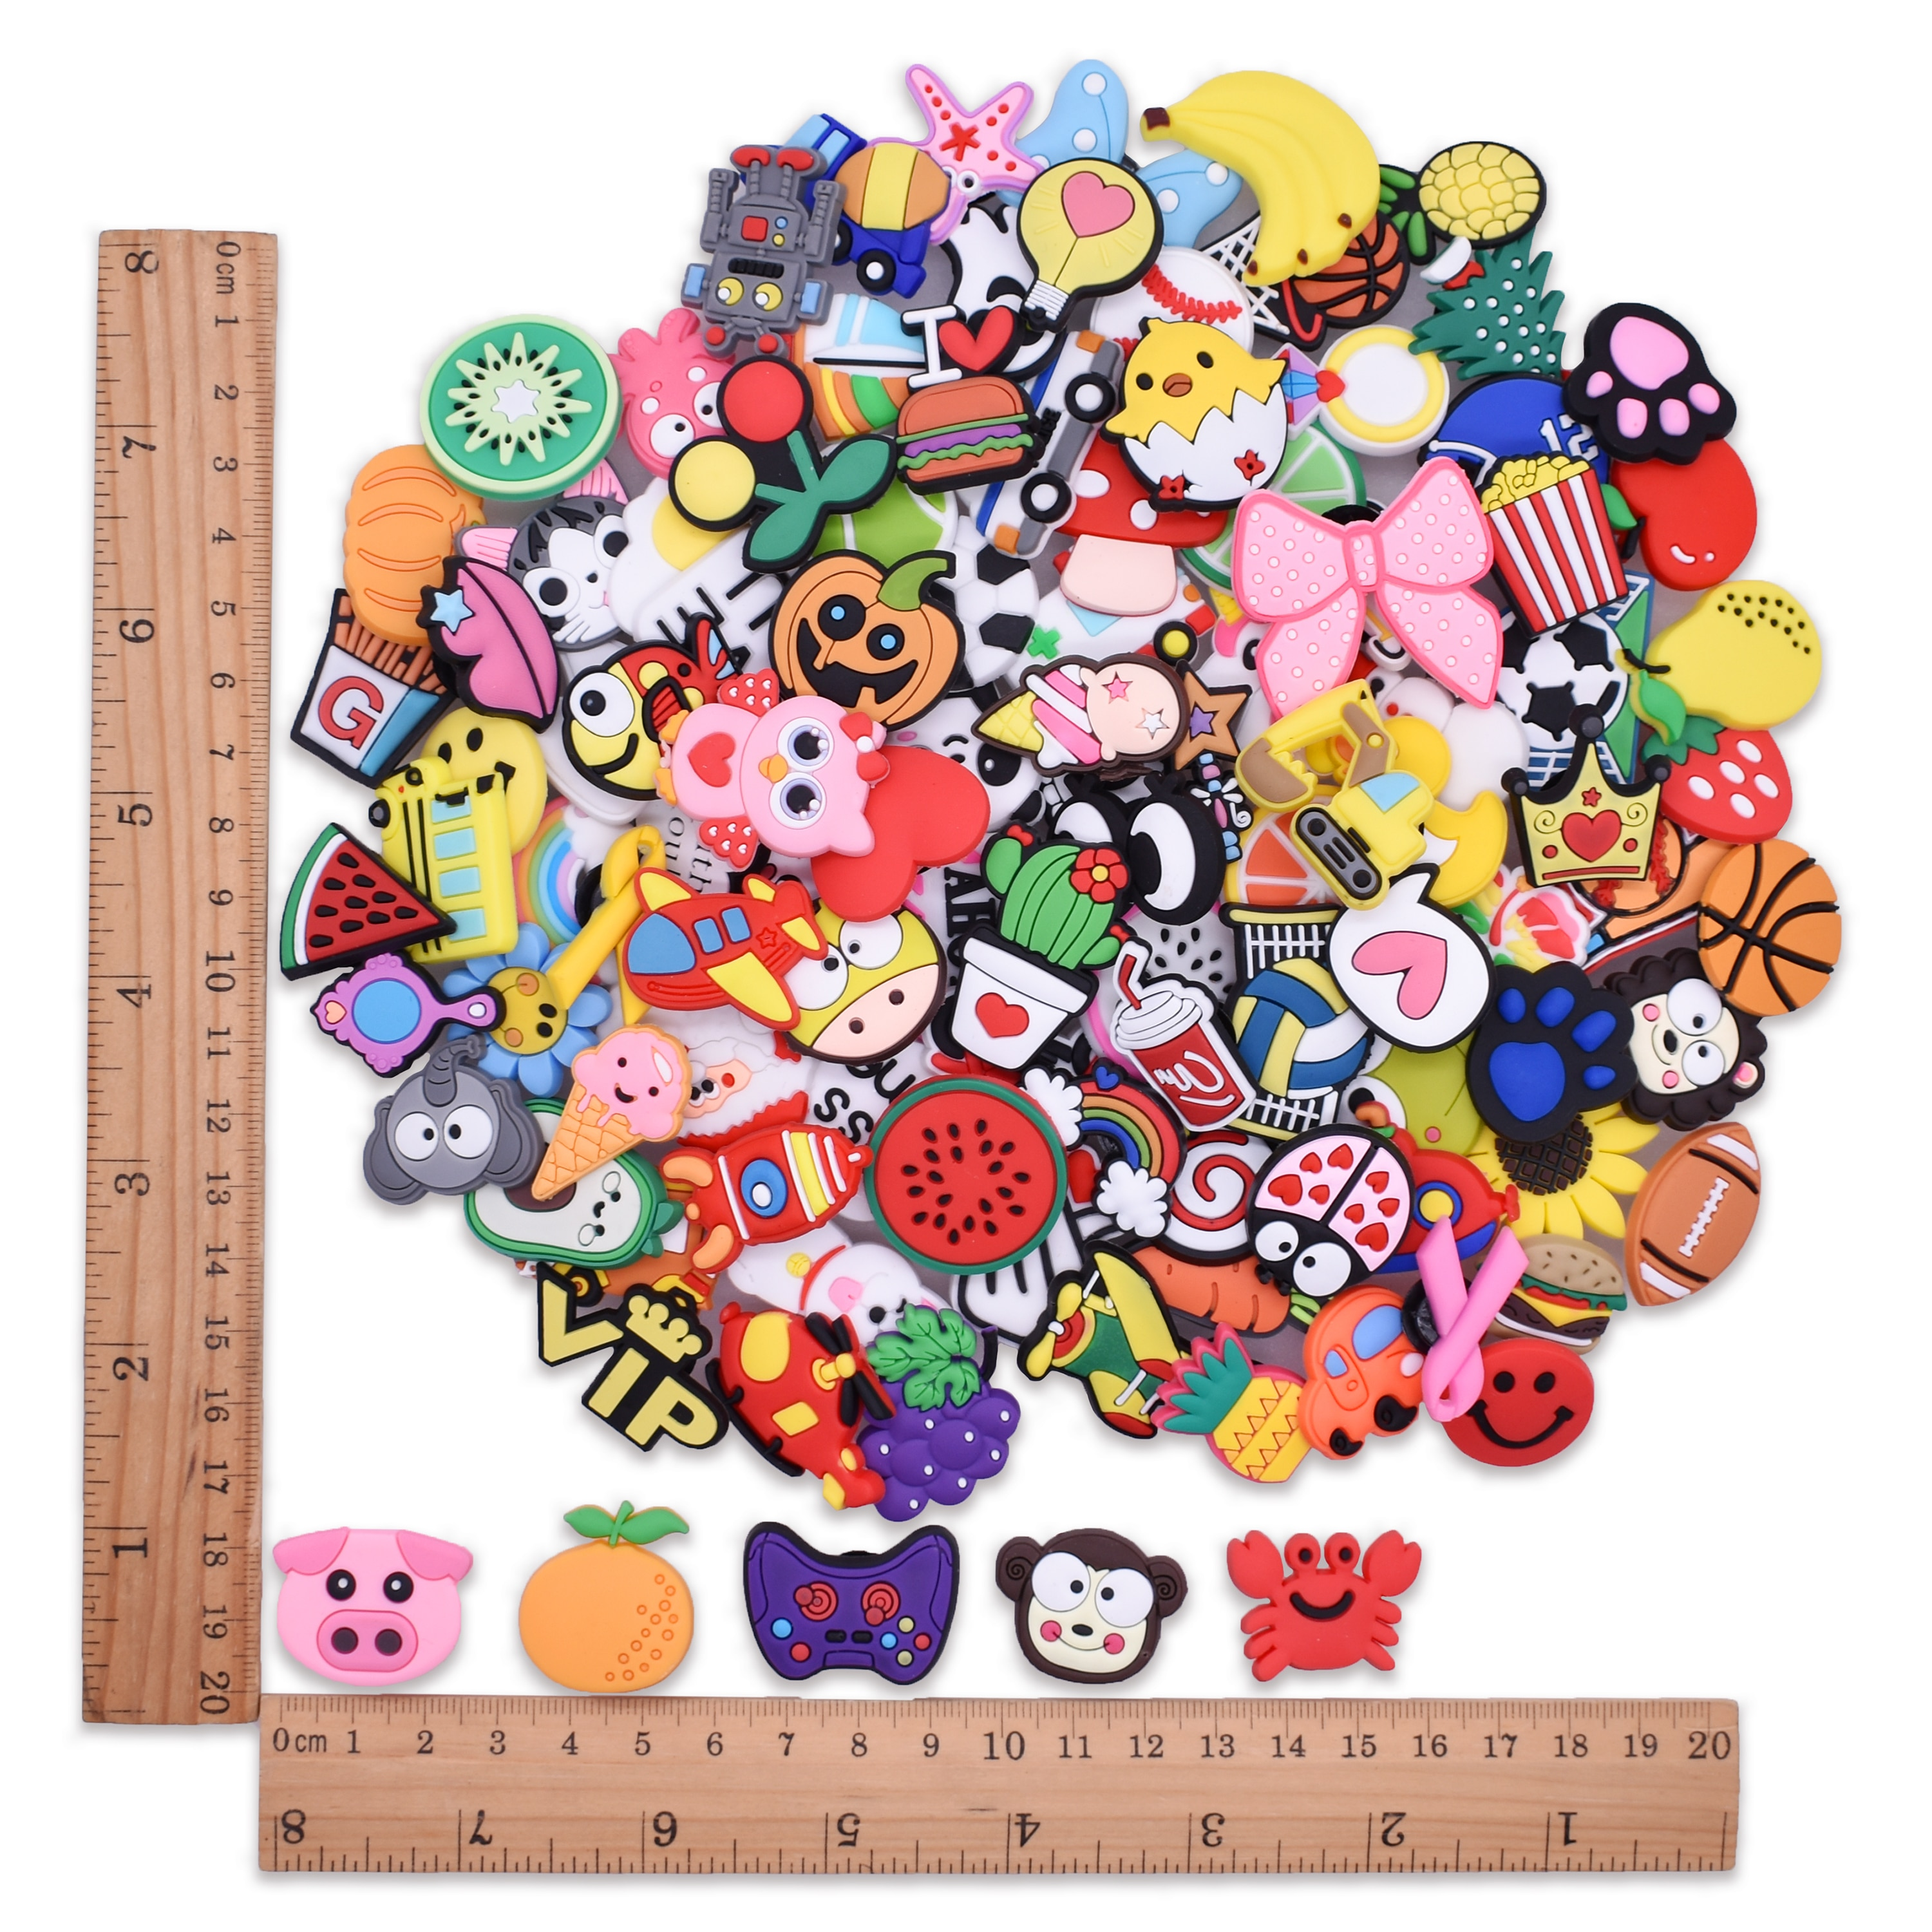 40-150PCS Ranom Cartoon Animal Shoes Charms Flower Pig Letter Decoration Fit Croc Wristband Accessories Kids X-MAS Gifts